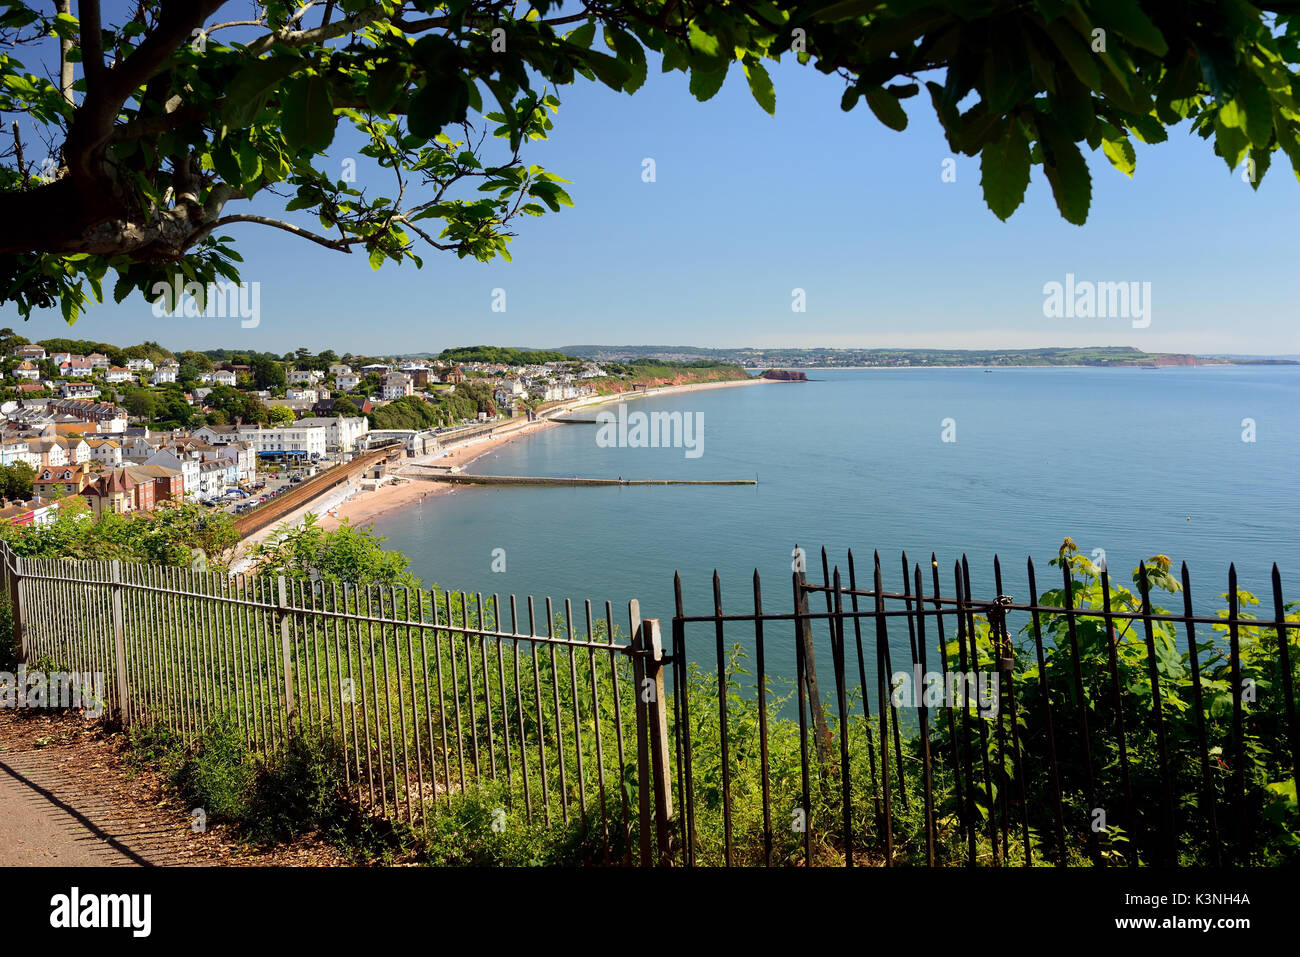 Dawlish seafront, looking towards Exmouth from Lea Mount. - Stock Image